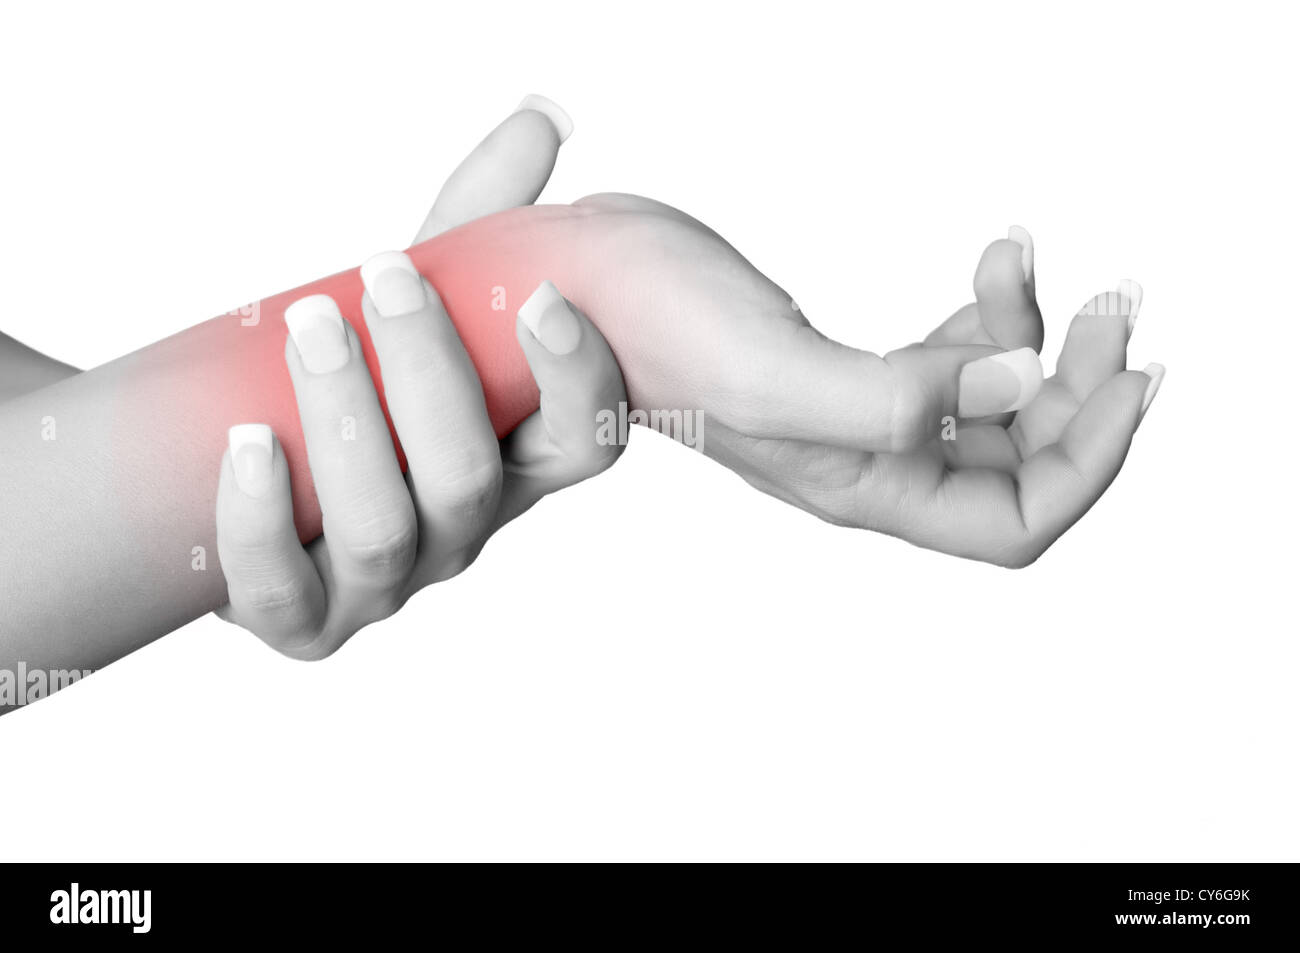 Female with pain in her wrist, isolated in a white background. Red circle around the painful area. - Stock Image